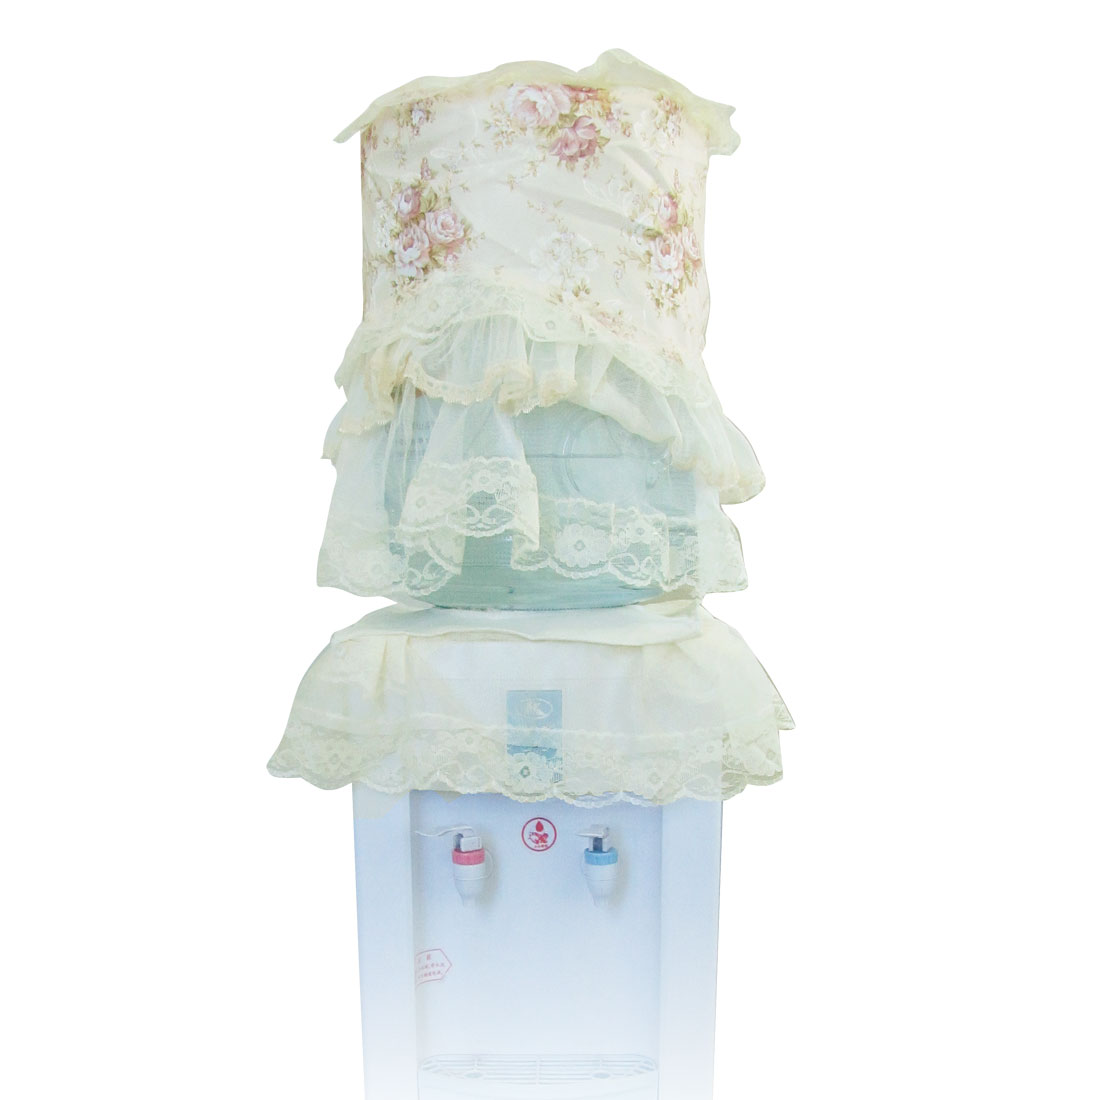 Floral Prints Ivory Lace Overlay Water Dispenser Anti-dust Cover Set